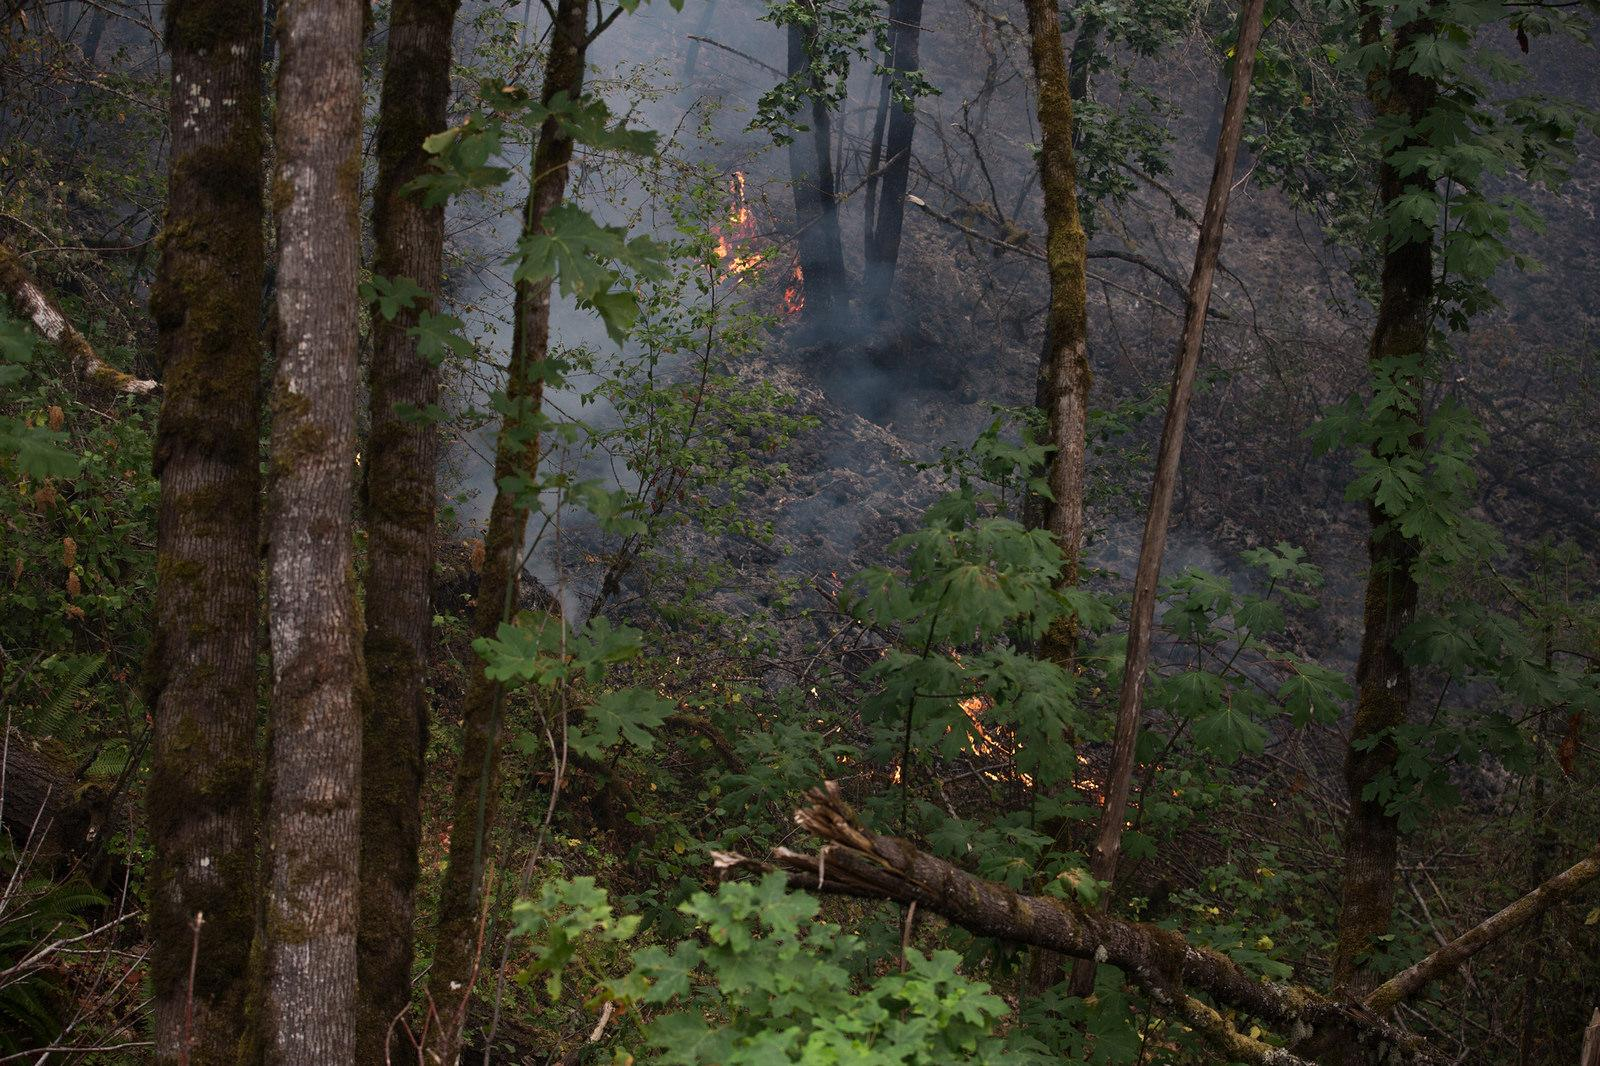 Local and state officials had their first look at the damage left behind from the Eagle Creek Fire Wednesday, September 6, 2017. The fire is burning in the Columbia River Gorge. Photo courtesy Multnomah County Communications